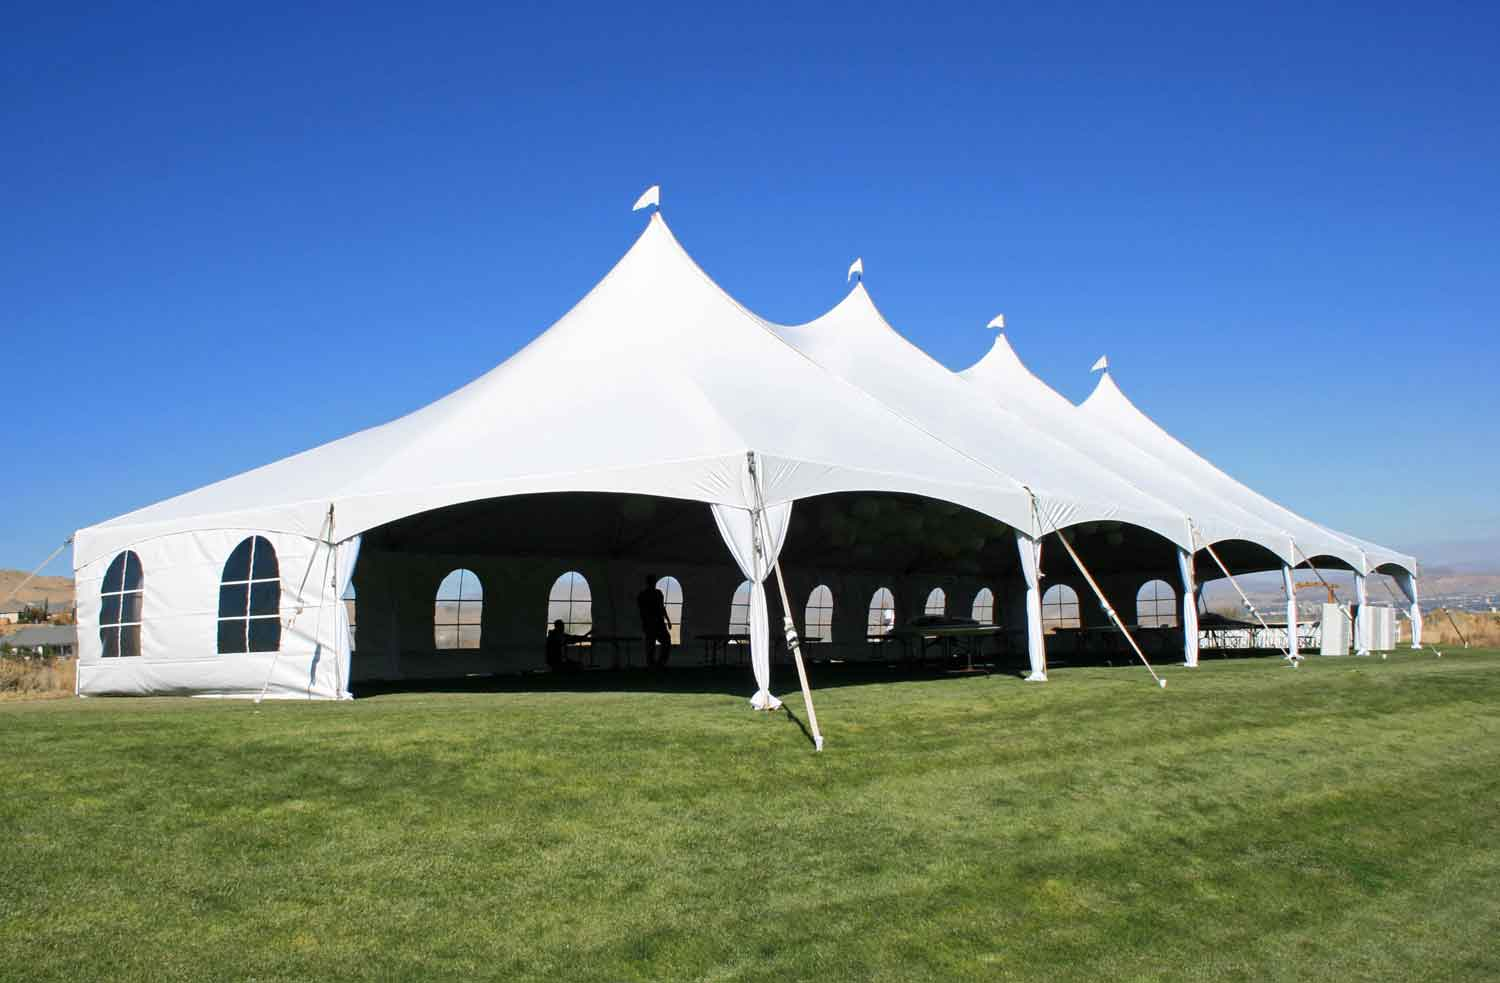 Party Tent Rentals – Things To Be Aware Of